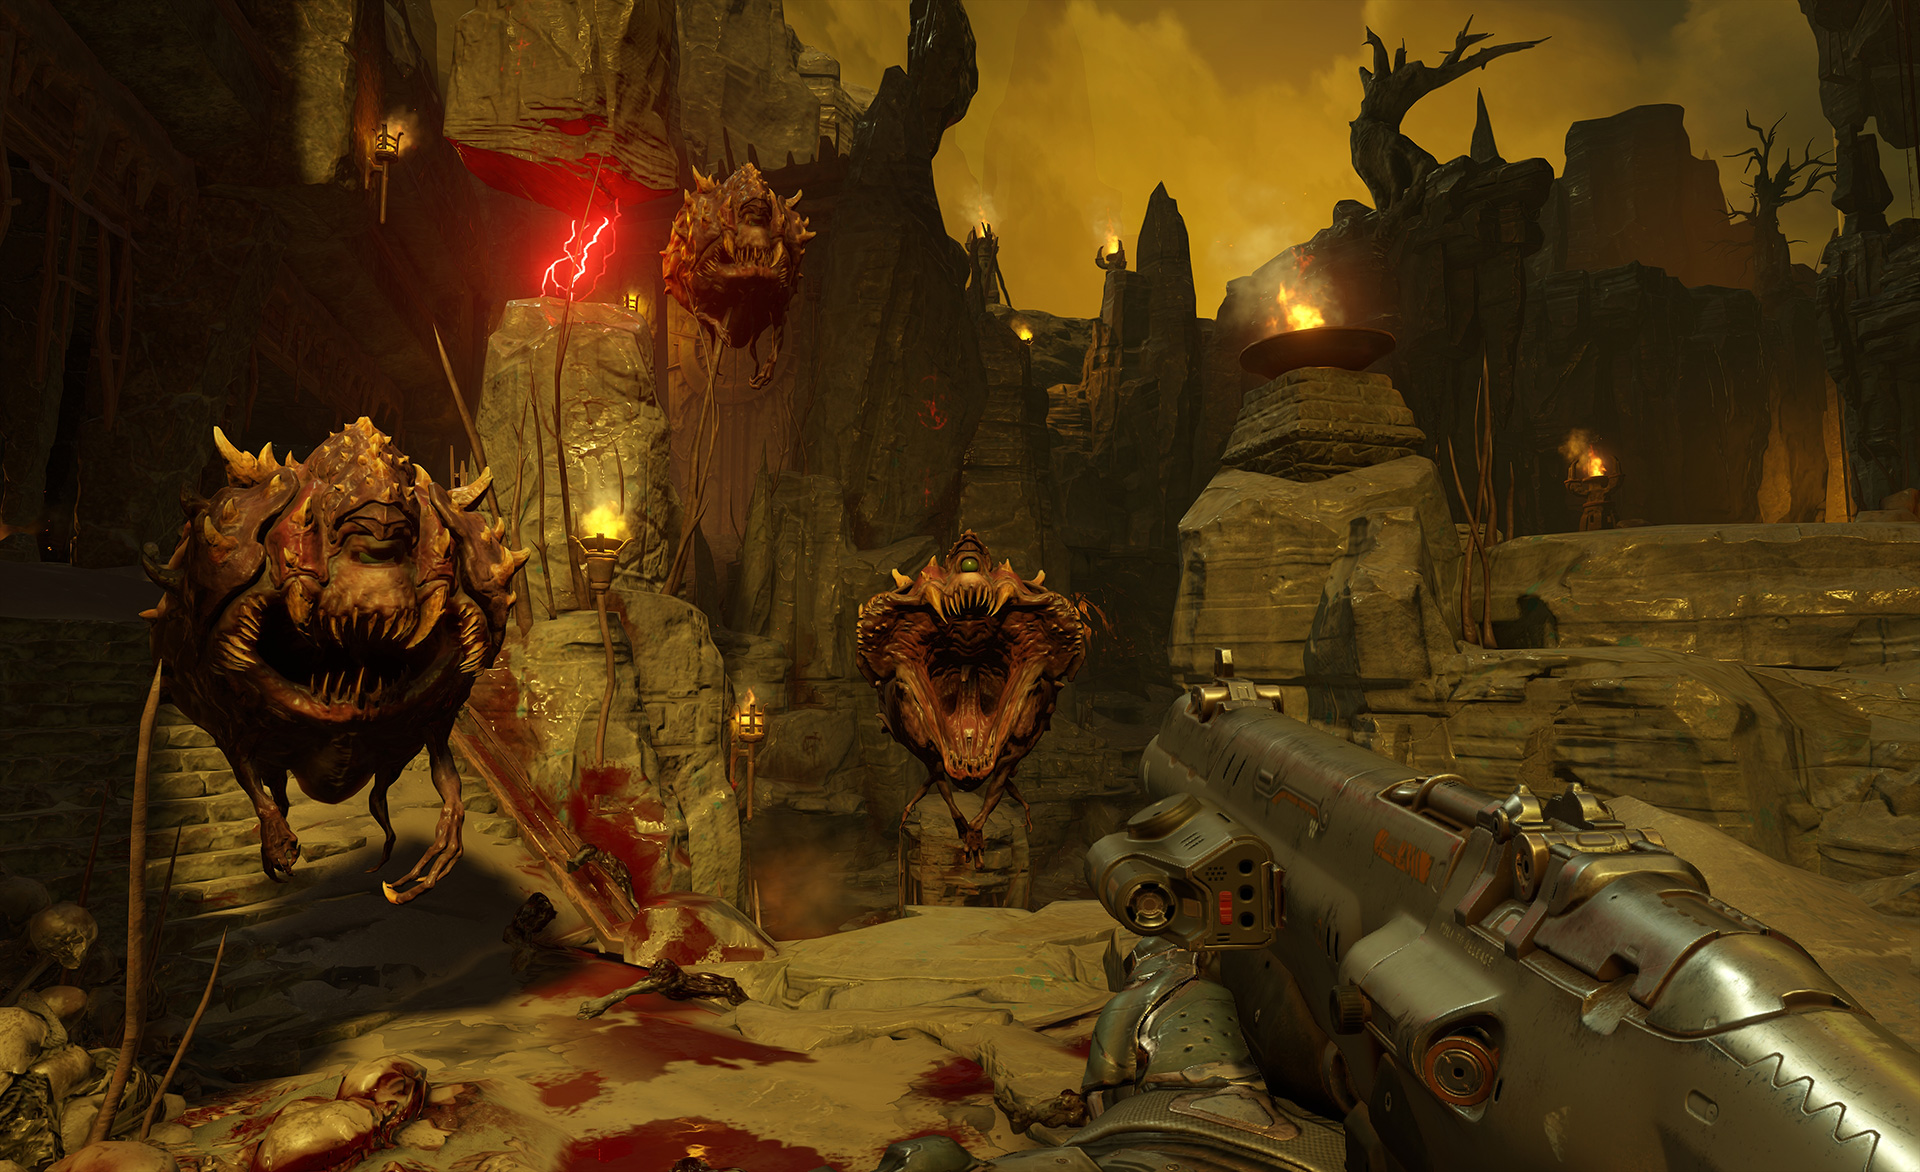 doom cacodemons screenshot 1920.0 DOOM Running On Nvidias GTX 1080 Is Ridiculous